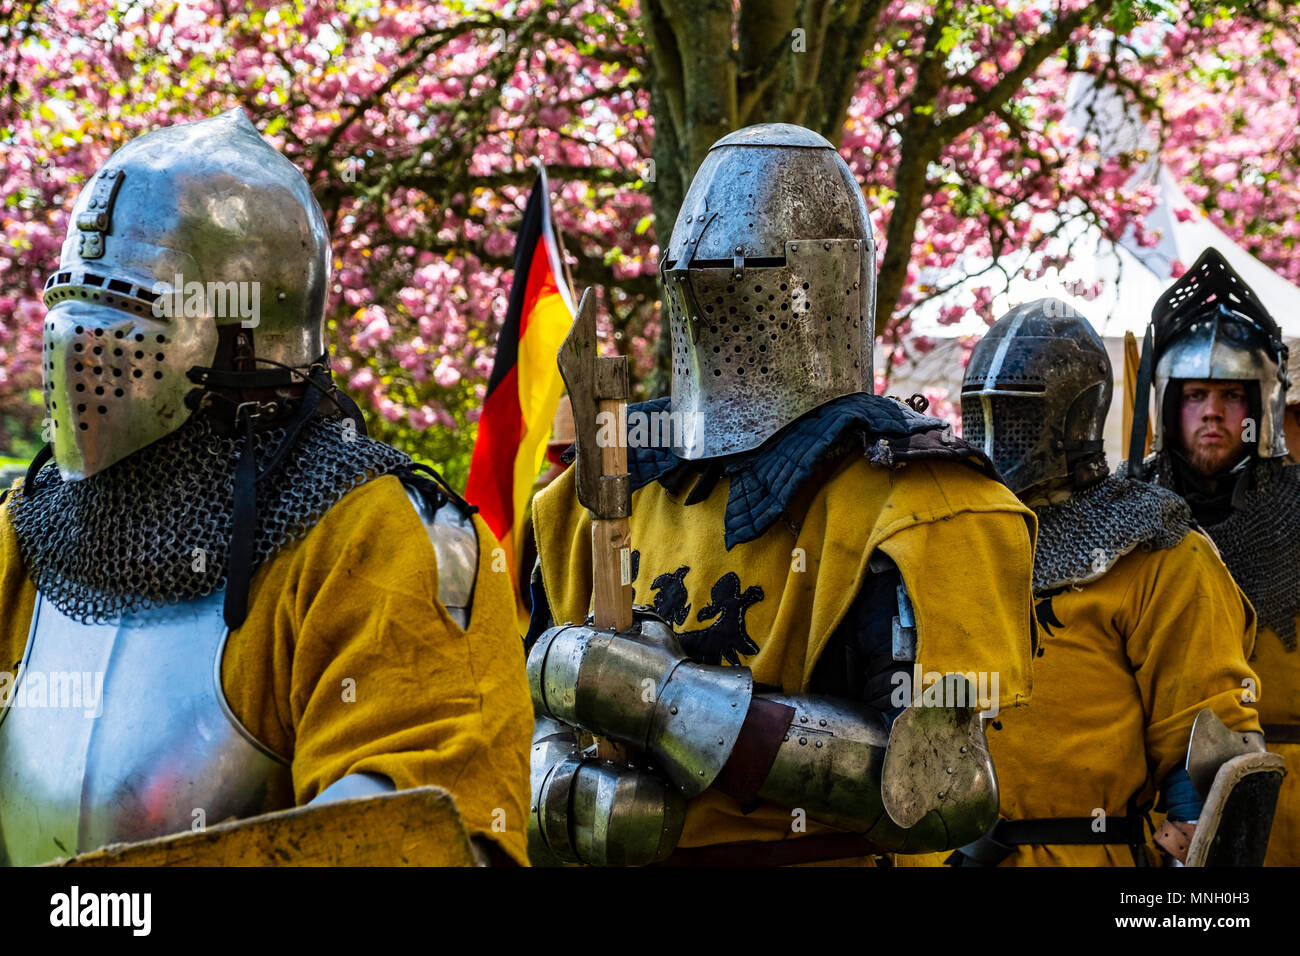 German knights prepare for combat during the  International Medieval Combat Federation (IMCF) World Championships  at Scone Palace on May 12, 2018 at  - Stock Image